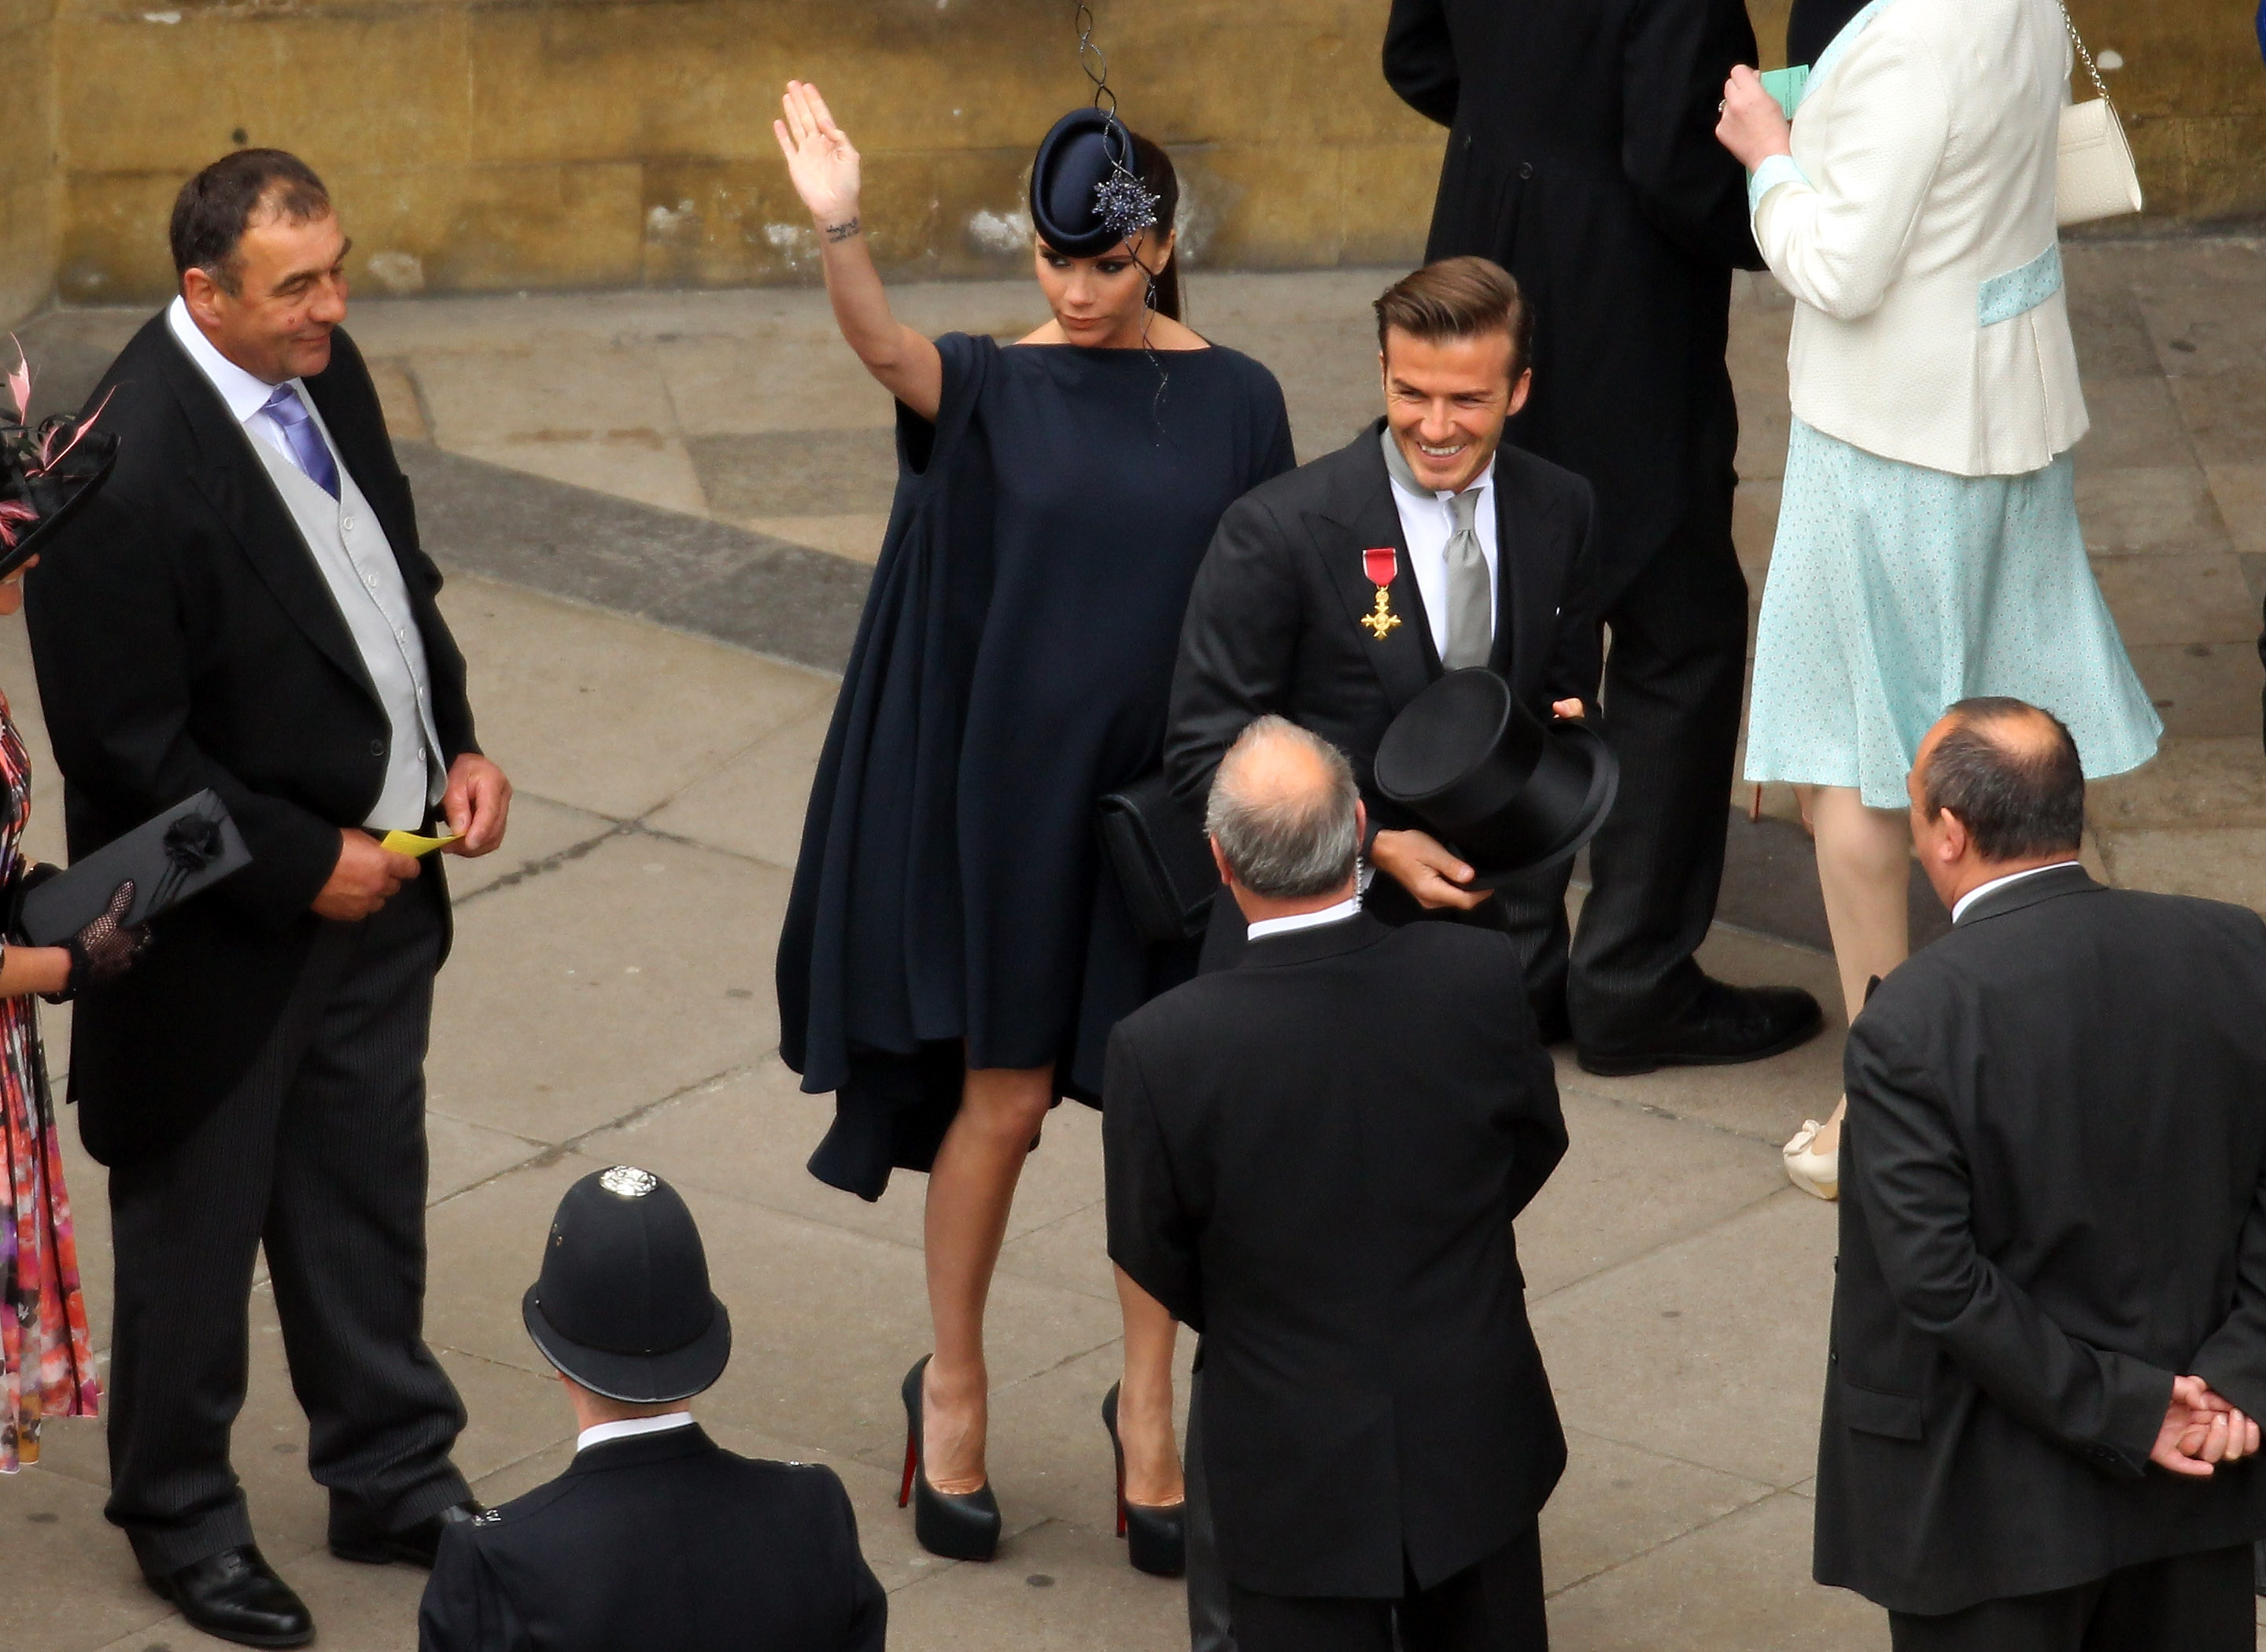 David and Victoria Beckham arrive for the Royal Wedding of Prince William to Catherine Middleton at Westminster Abbey on April 29, 2011 in London, England.